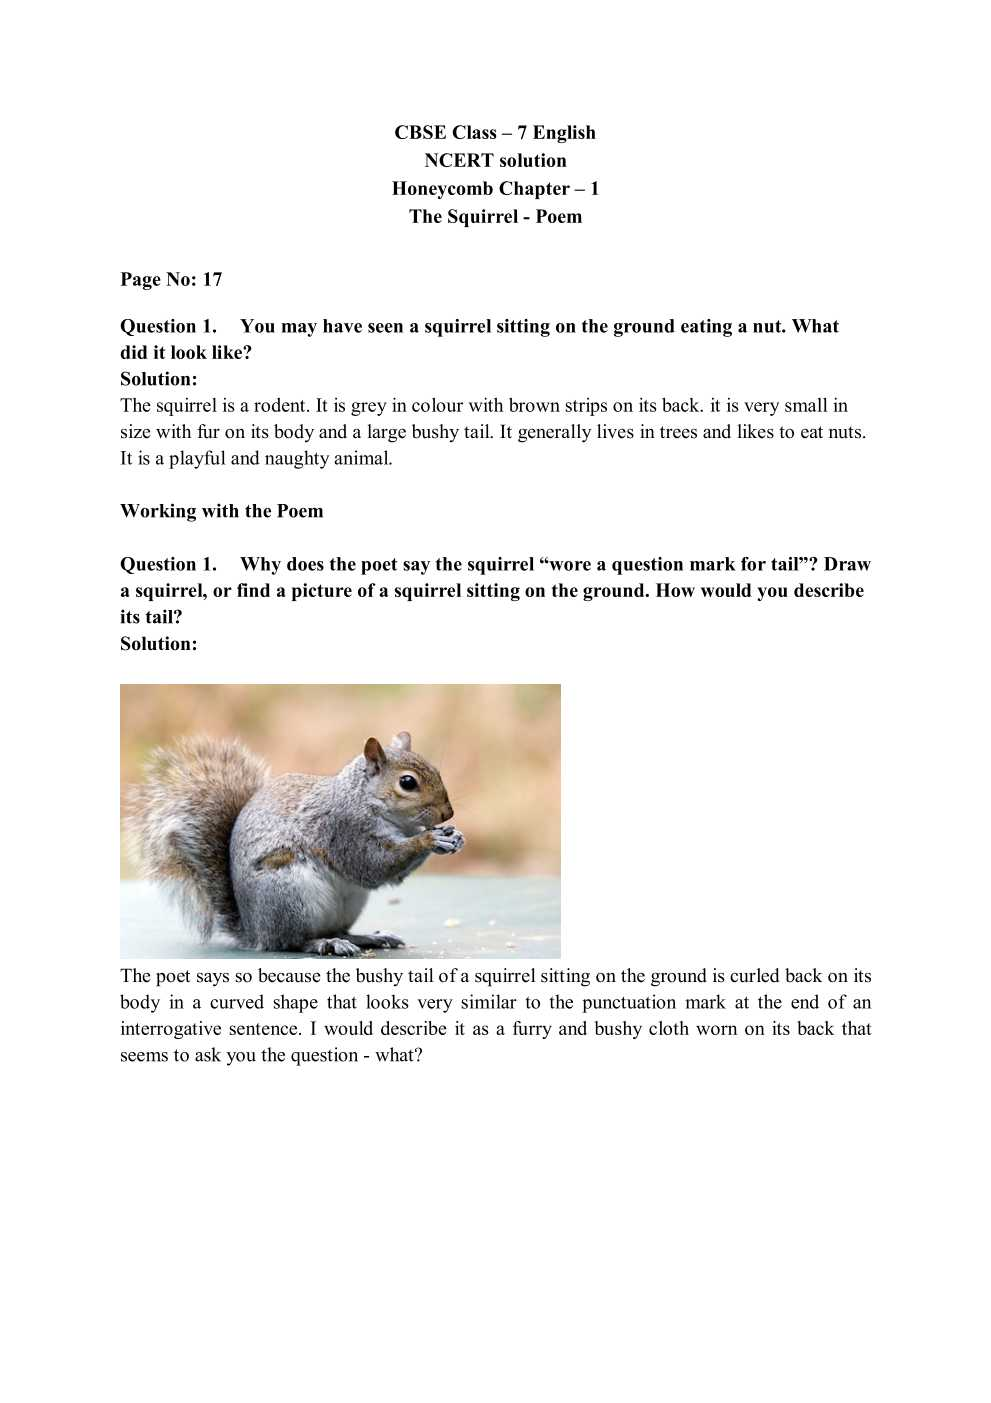 NCERT Solutions For Class 7 English Honeycomb Poem Chapter 1 The Squirrel